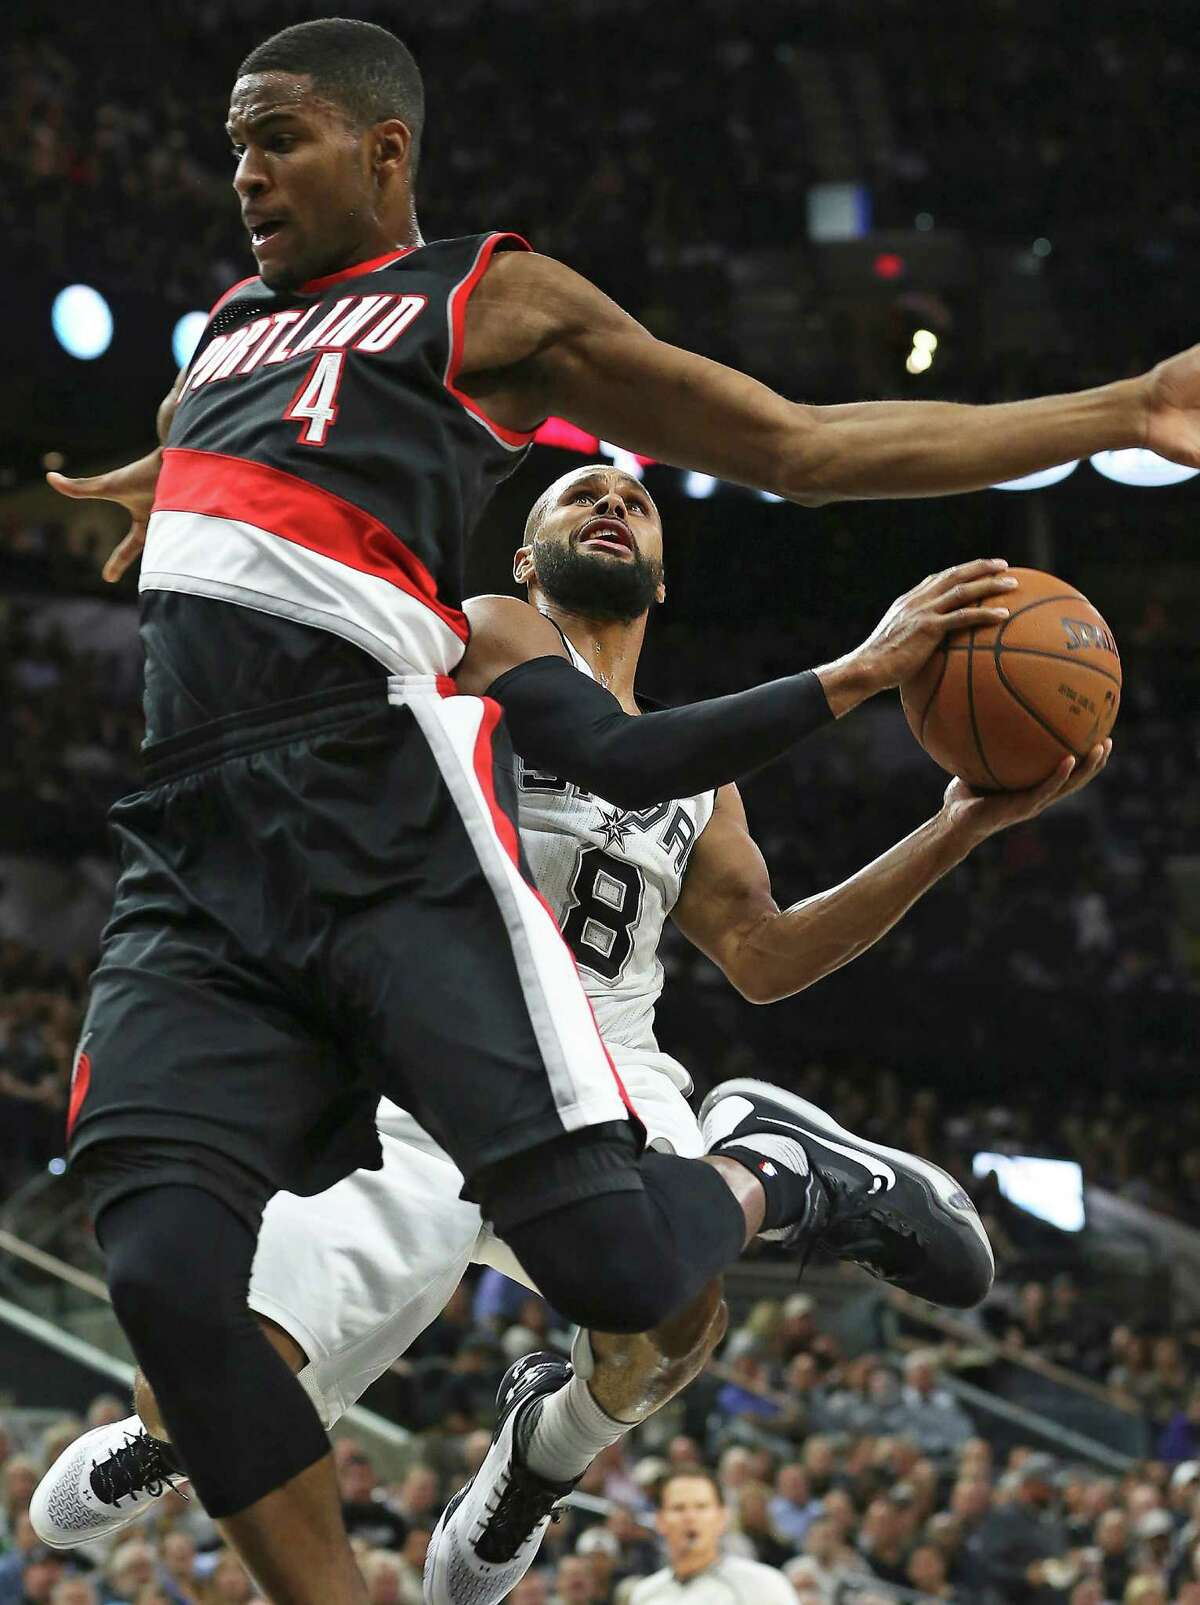 Patty Mills tries to angle around Maurice Harkless on a fast break as the Spurs host Portland at the AT&T Center on November 16, 2015.